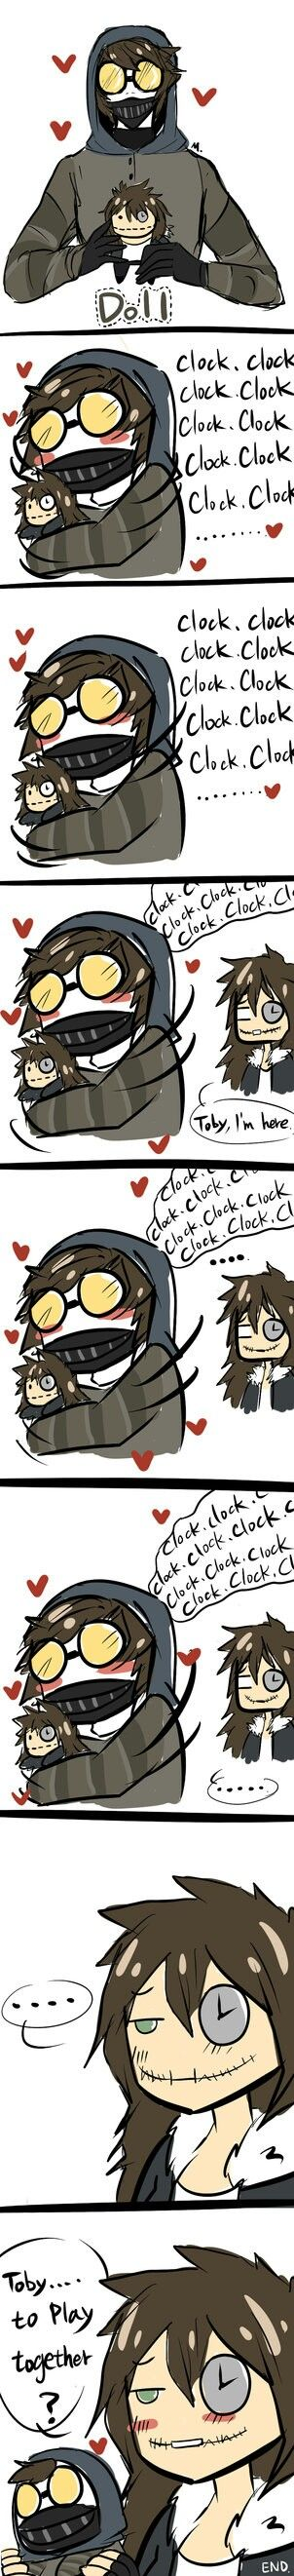 I personally don't ship them...... Sorry! But I like to ship my baby Toby with Masky or someone a little manlier. You know, cause I honestly like gay ships better most of the time. And Toby just seems so damaged and nervous. He needs a big strong man in his life. Just saying. But I think he and Clockwork would be BESTIES FOR THE RESTIES!!!!!!!!!!